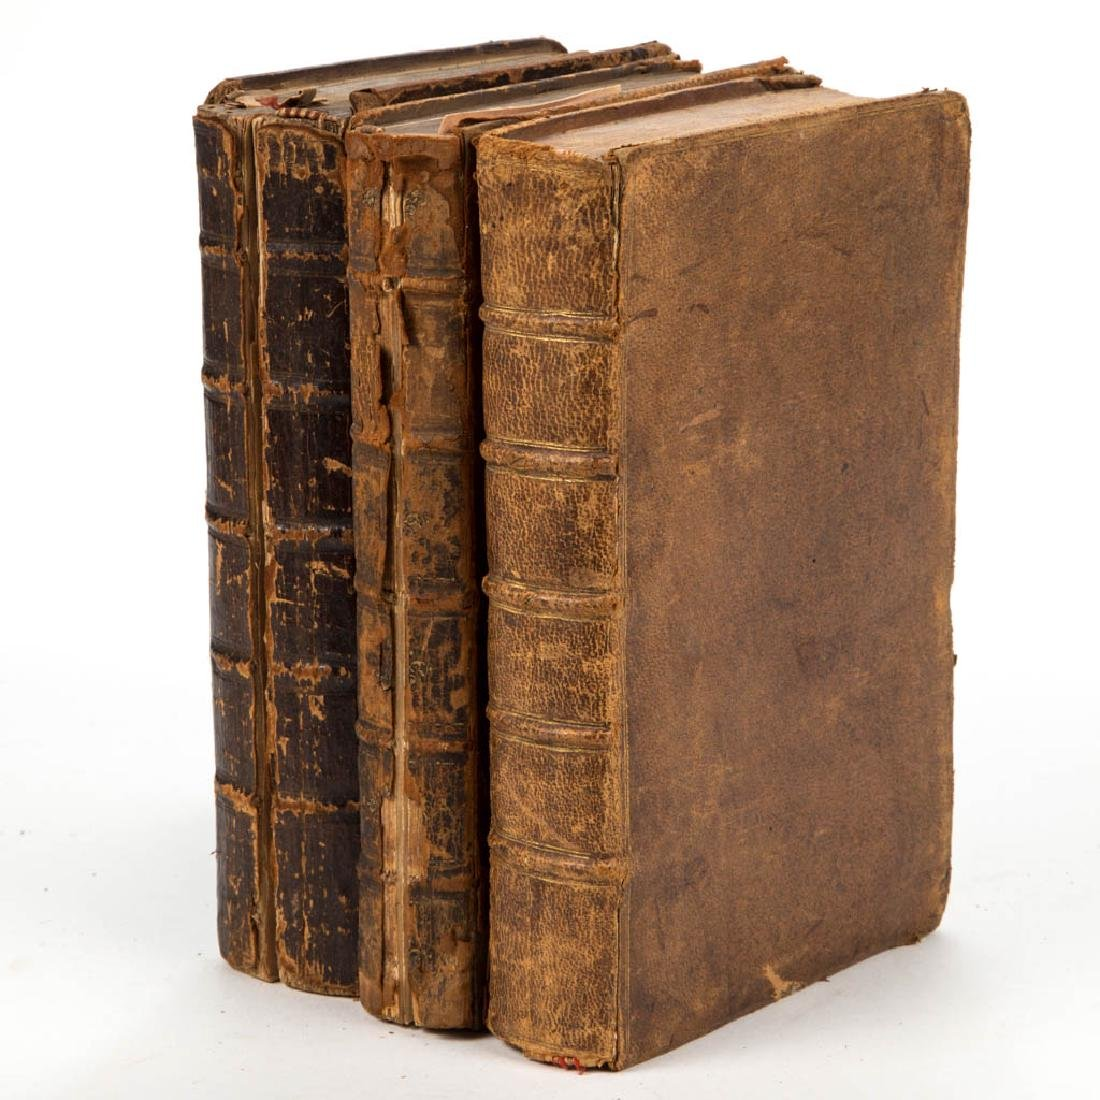 BRITISH HISTORICAL TRADES AND RELATED VOLUMES, LOT OF